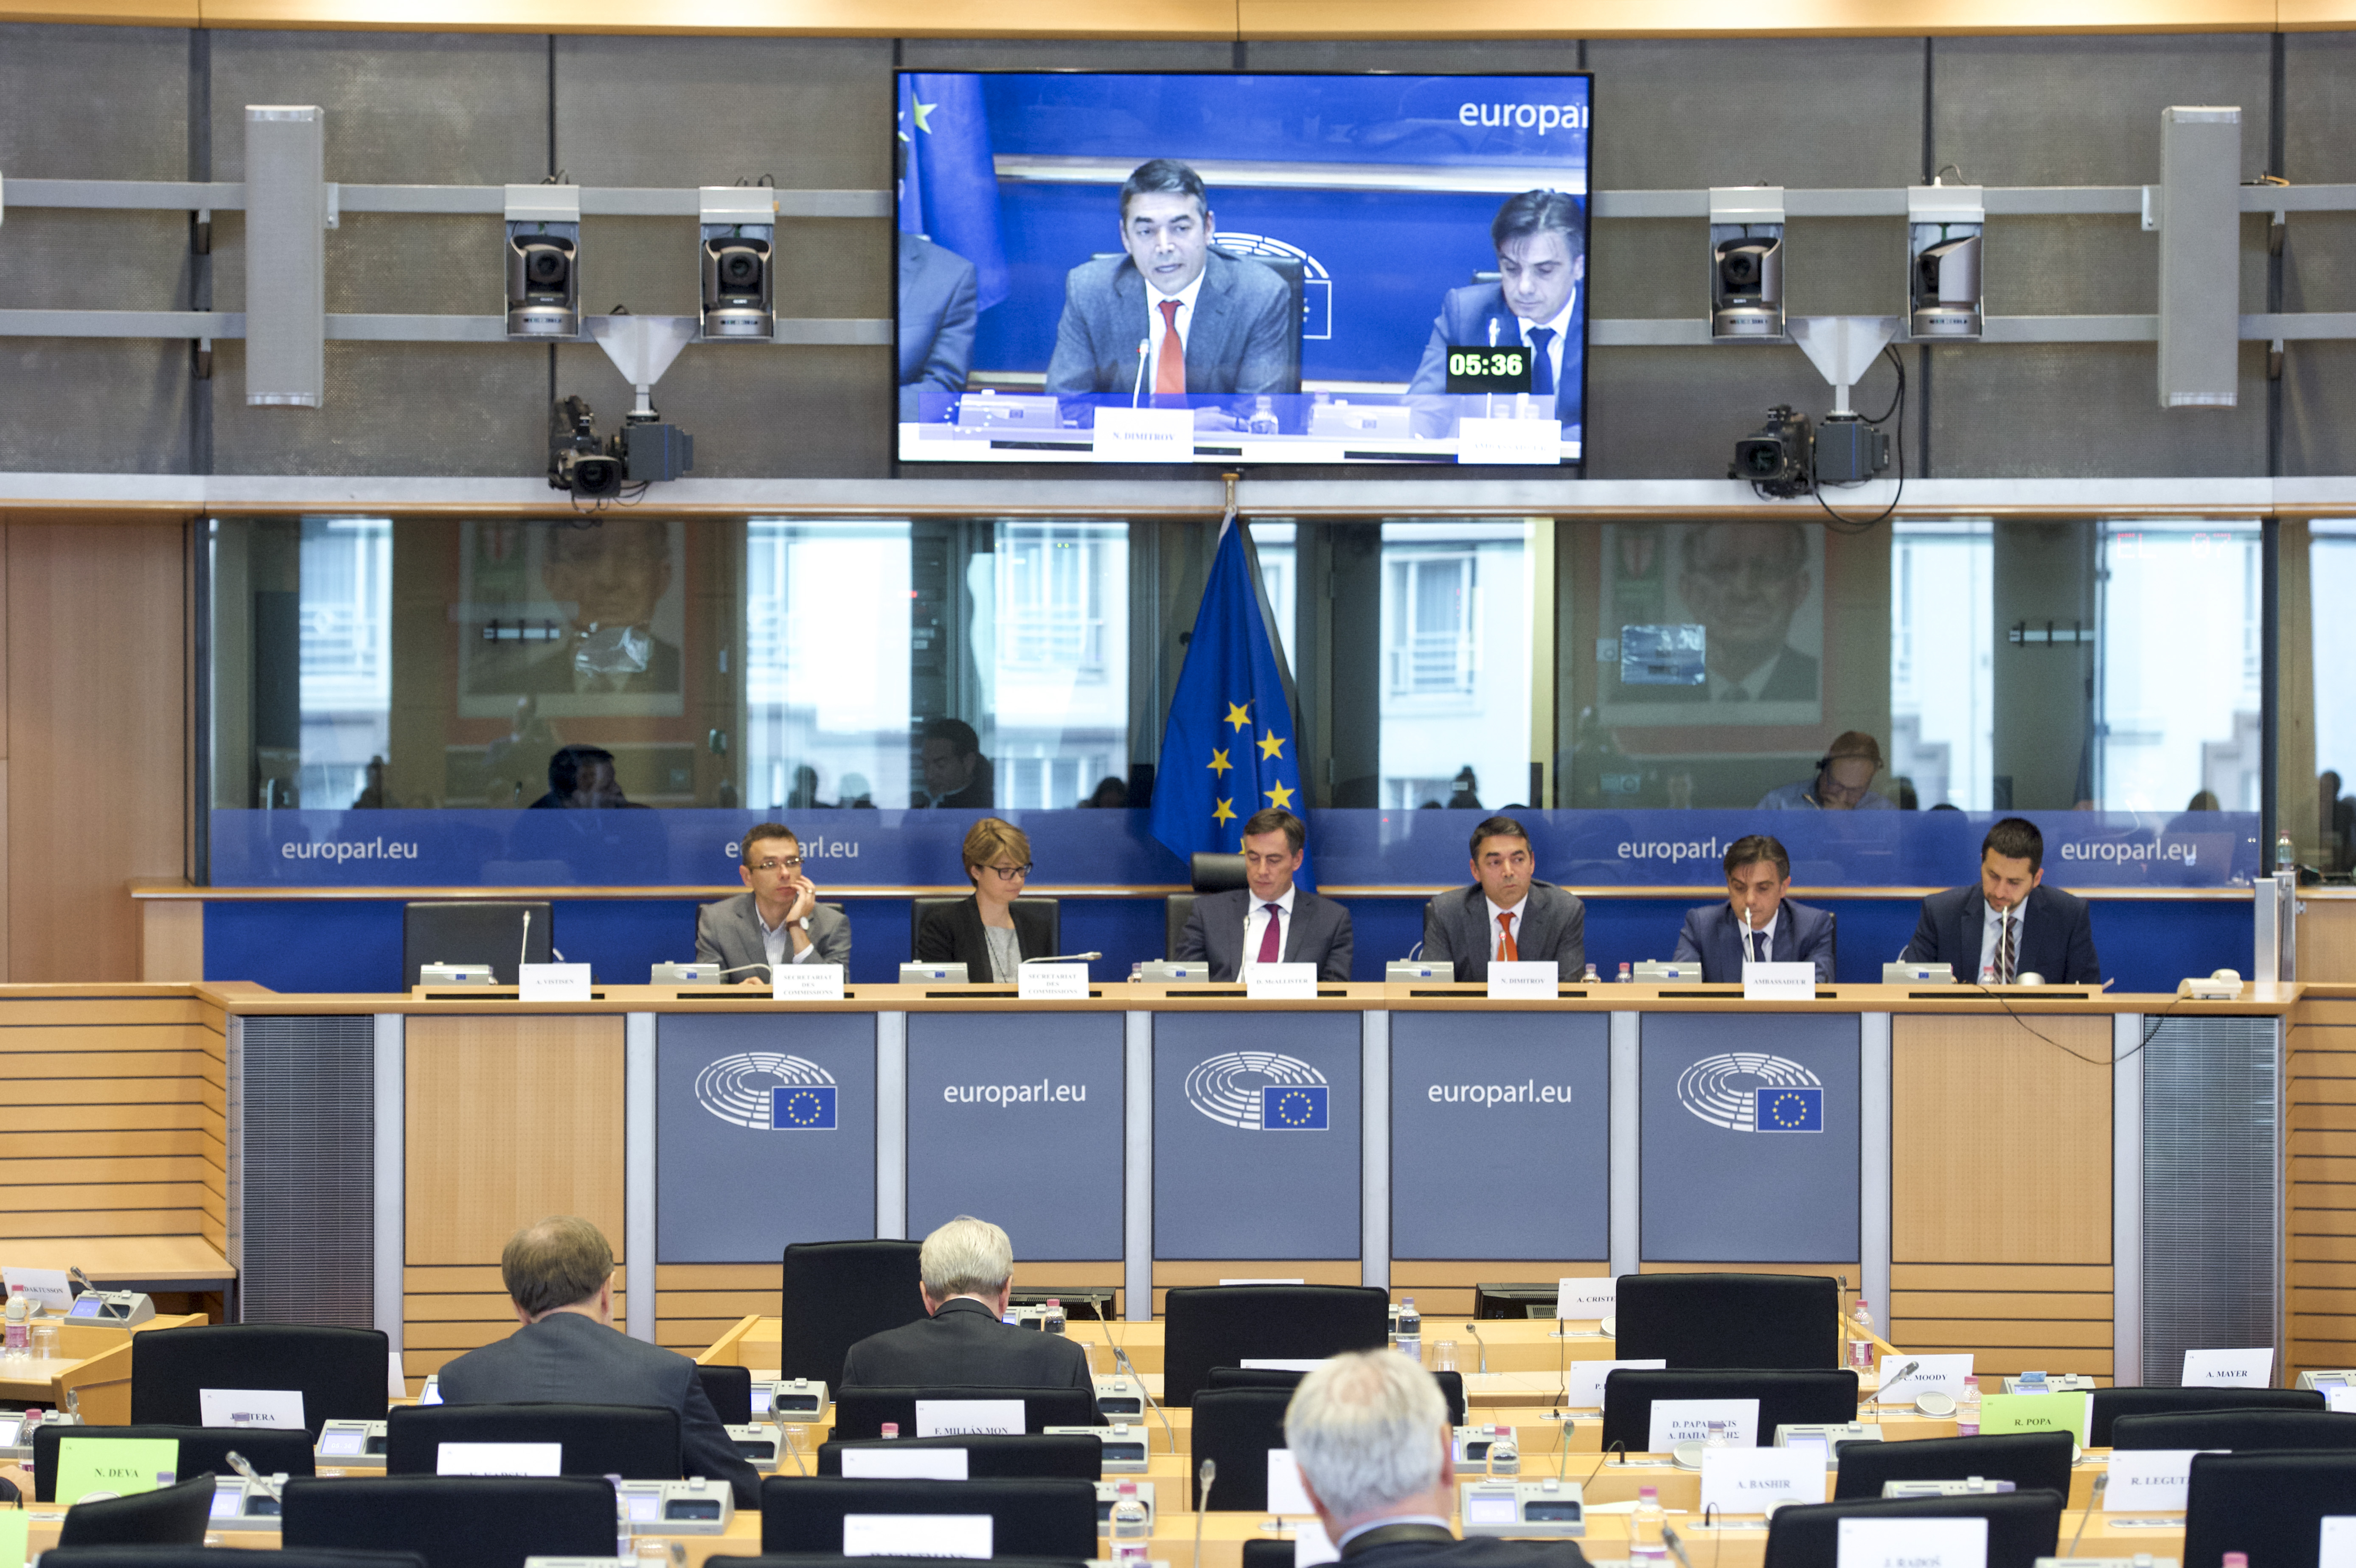 AFET committee meeting - Exchange of views with Foreign Minister of the former Yugoslav Republic of Macedonia; Photo: European Union